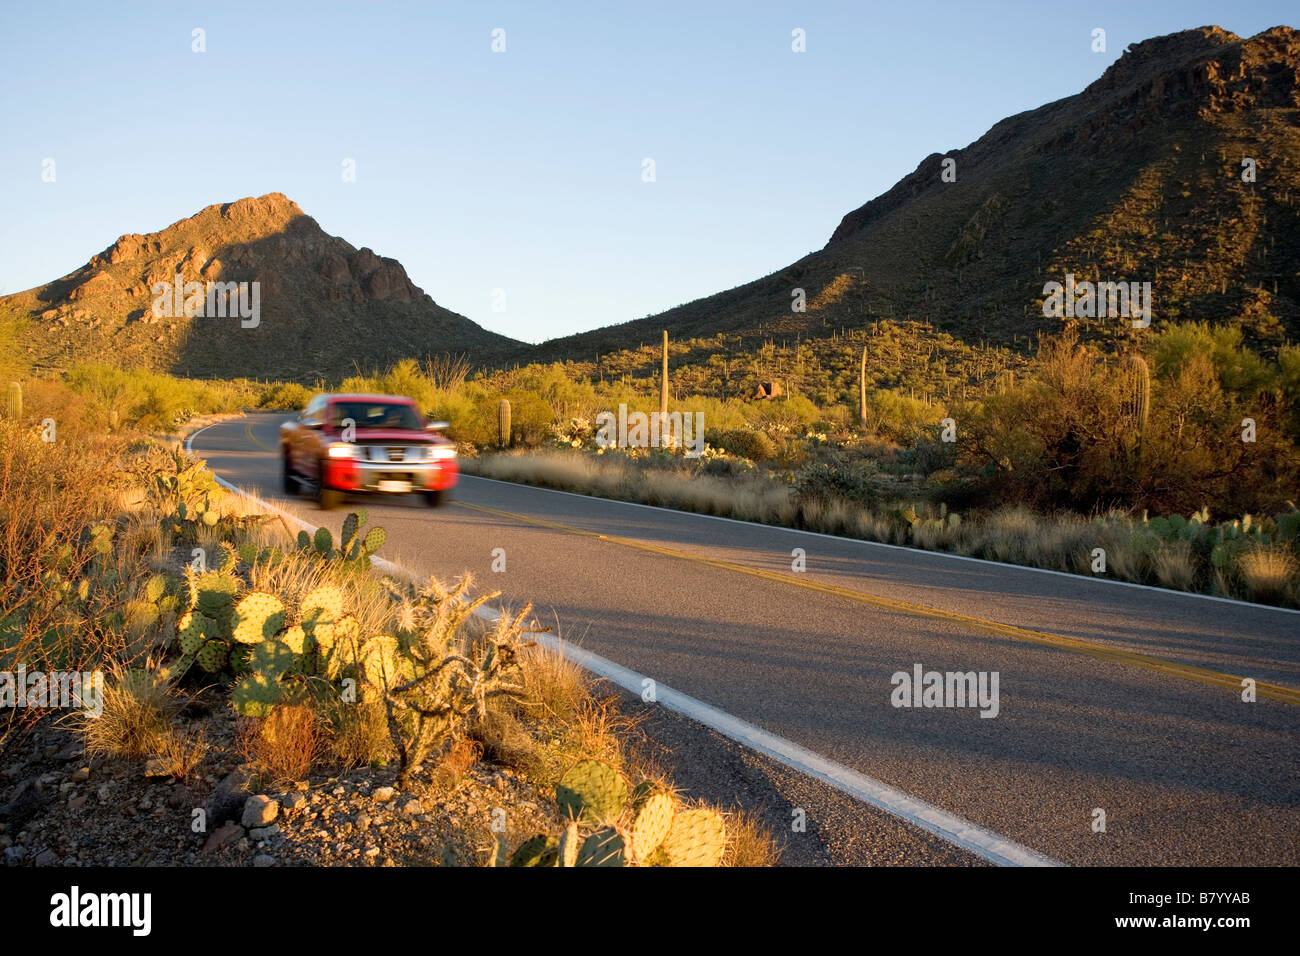 A car drives through Saguaro West National Park on Gates Pass Road just west of the Overlook near the Yetman and - Stock Image